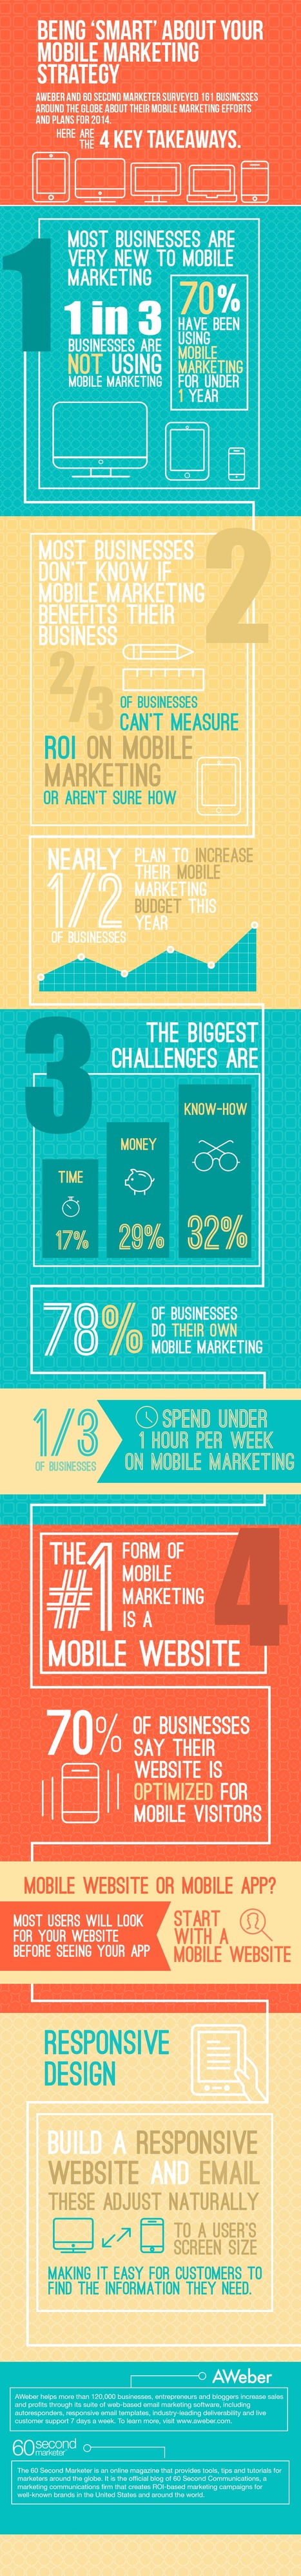 4 Things You Need to Know About Mobile Marketing in 2014 | MarketingHits | Scoop.it